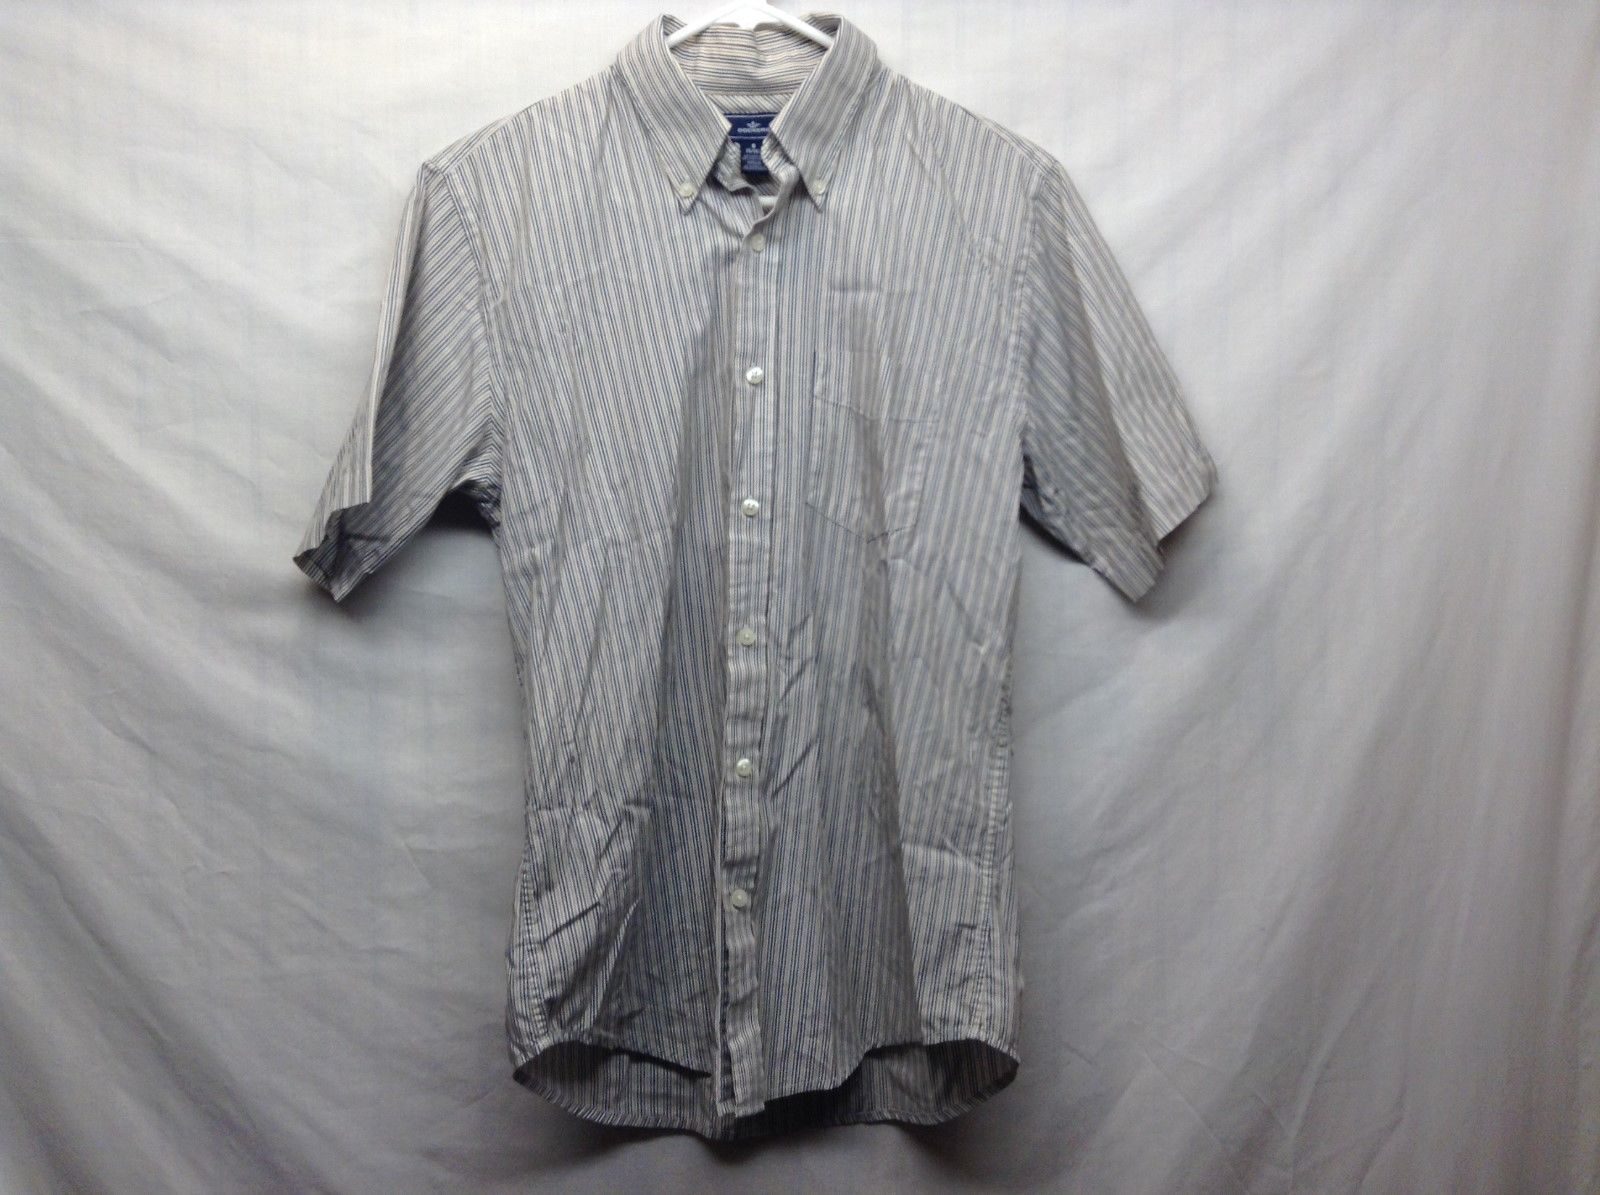 Dockers Short Sleeve Dark Blue Collared Shirt Sz 14-14.5